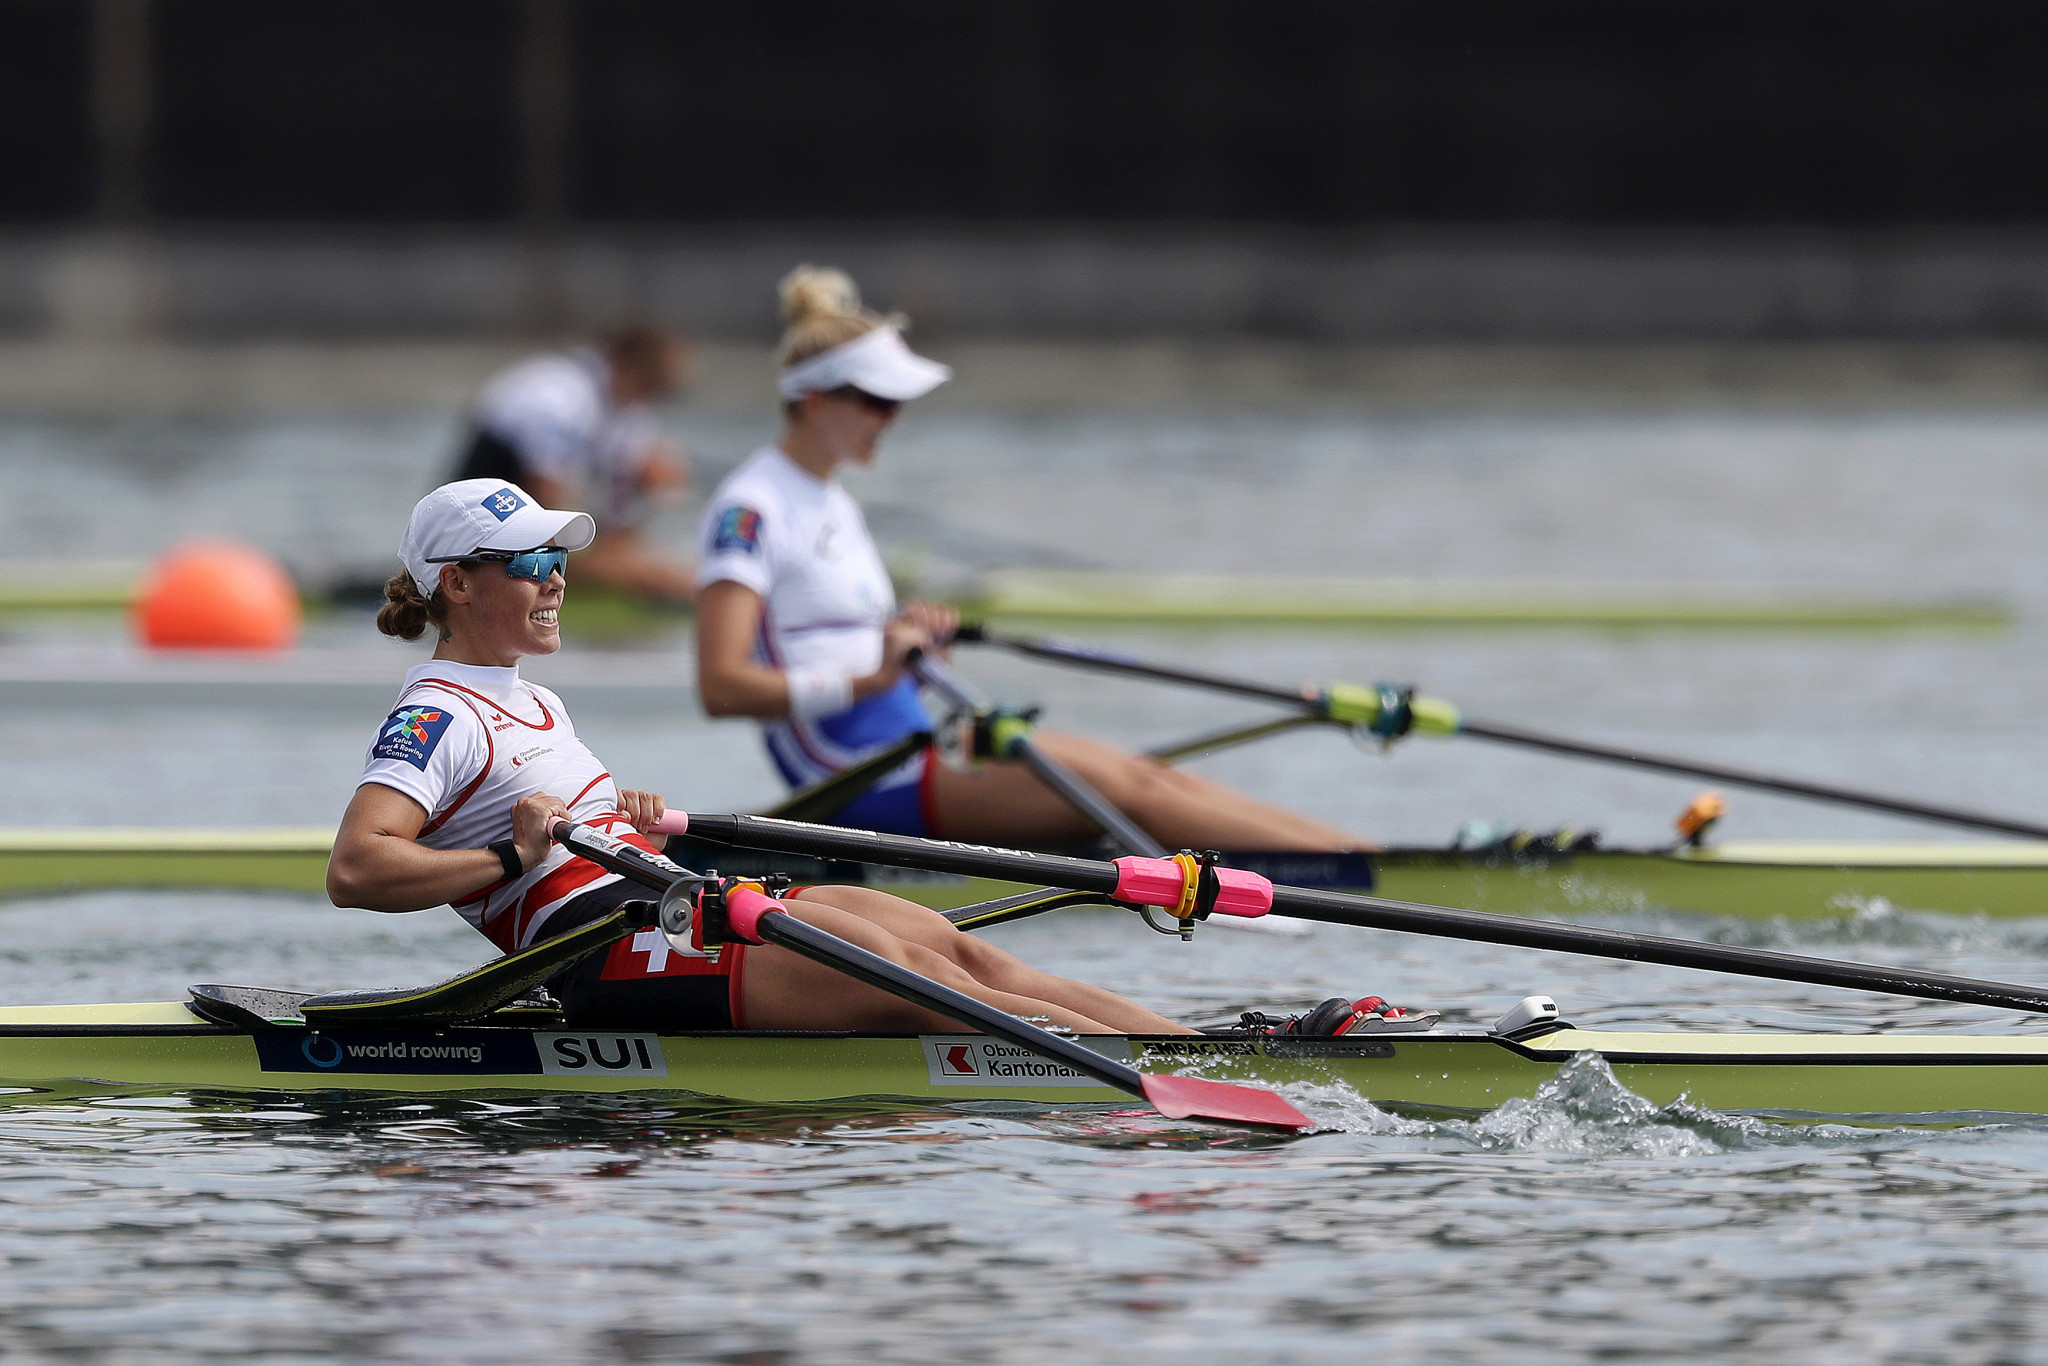 FISA exploring possibility of moving 2021 World Rowing Championships before Olympics